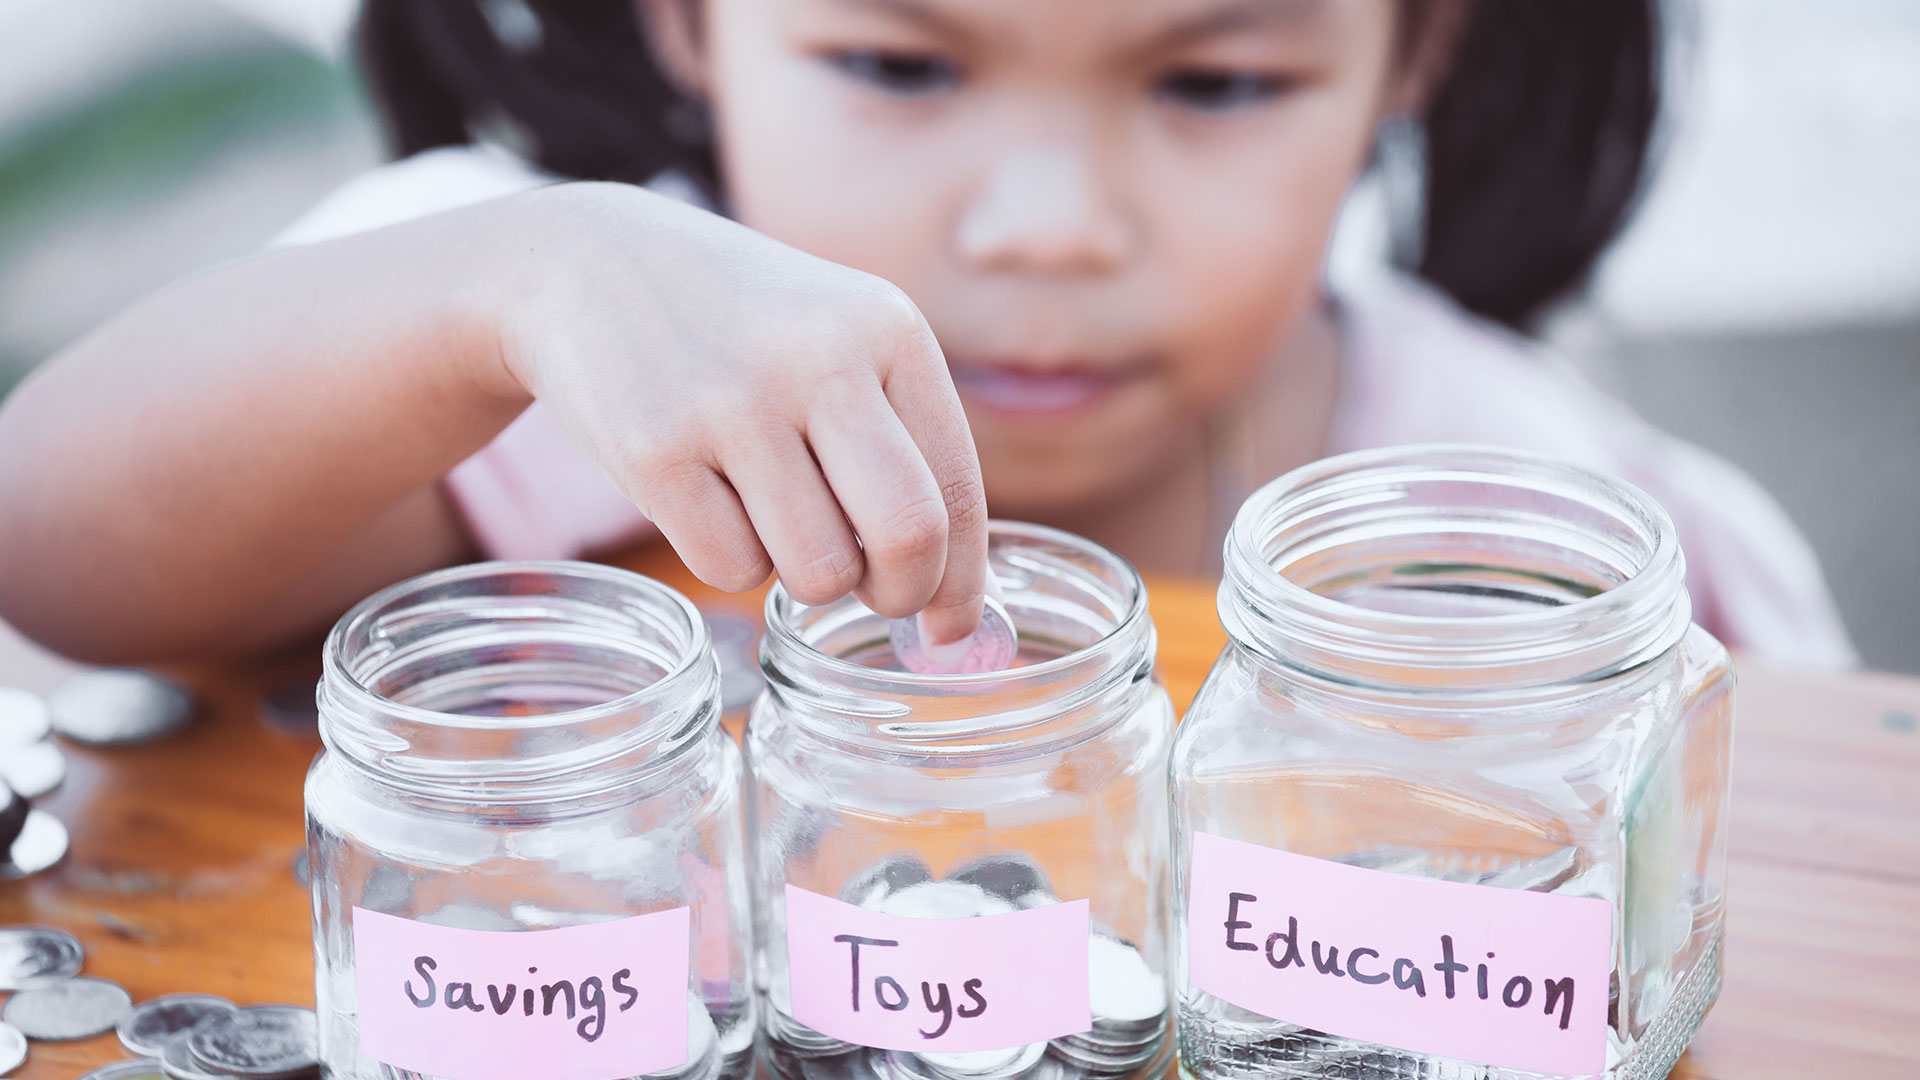 SAFE Blog Poll - What finance-related lesson should all kids know?